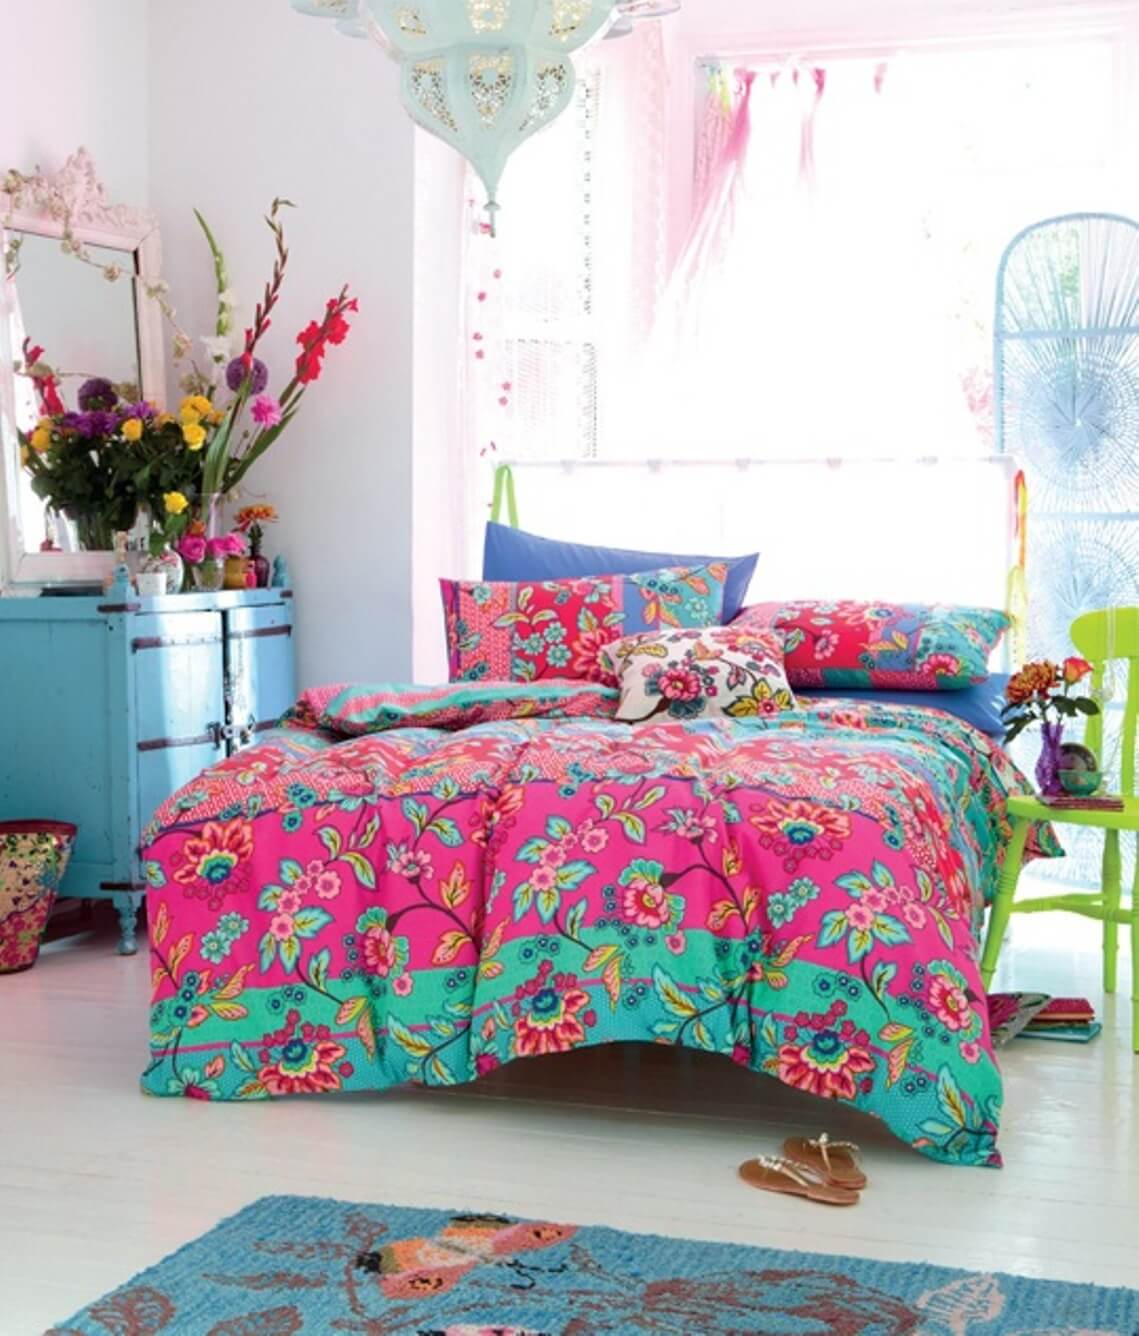 8 bohemian chic teen girl 39 s bedroom ideas. Black Bedroom Furniture Sets. Home Design Ideas